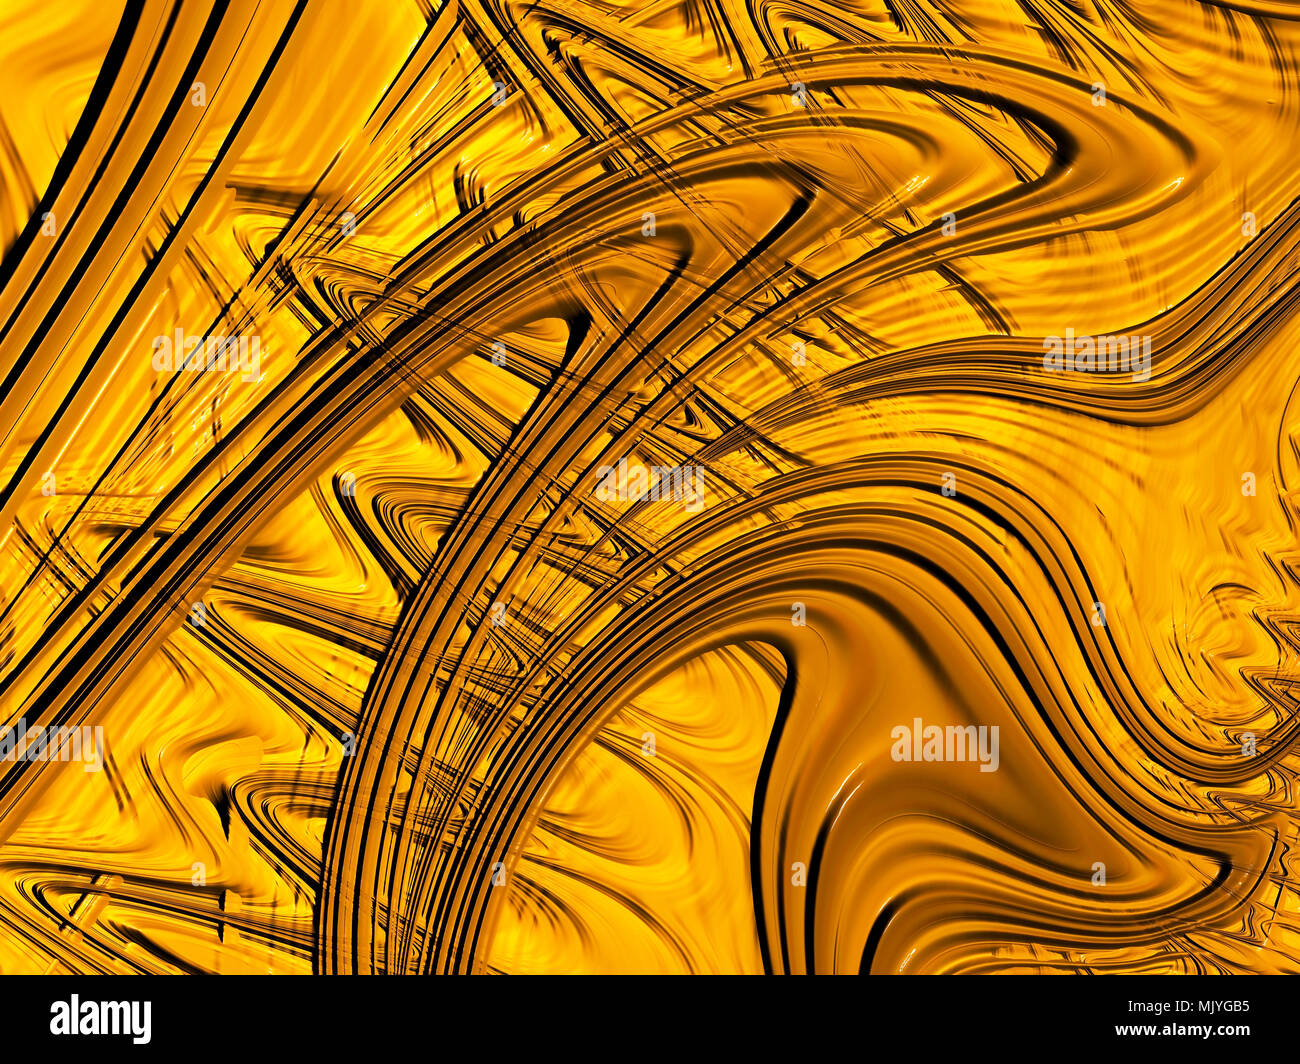 abstract fractal textured gold background with multiple curved lines